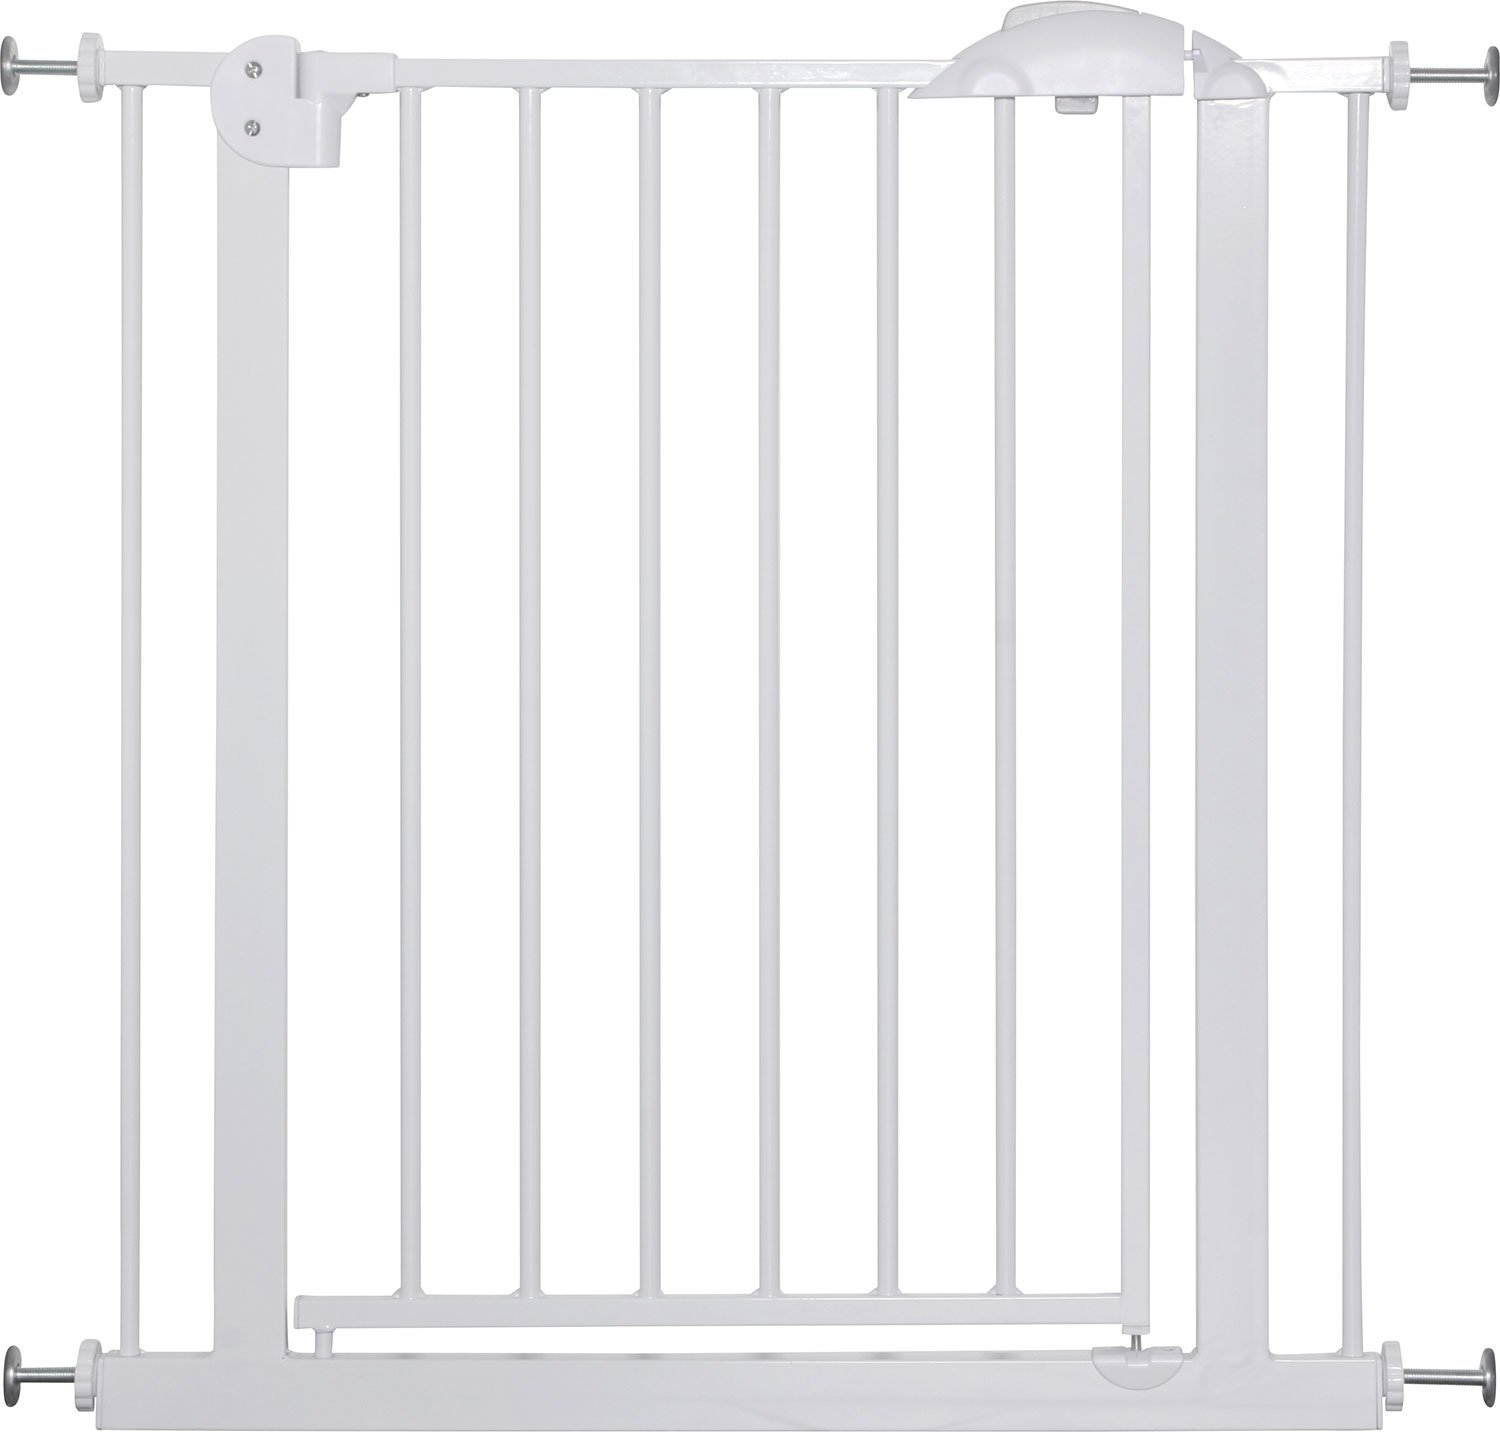 IB-Style - Door- & Stairgate Safetygate MIKA WHITE | 75-175 cm | 29.5